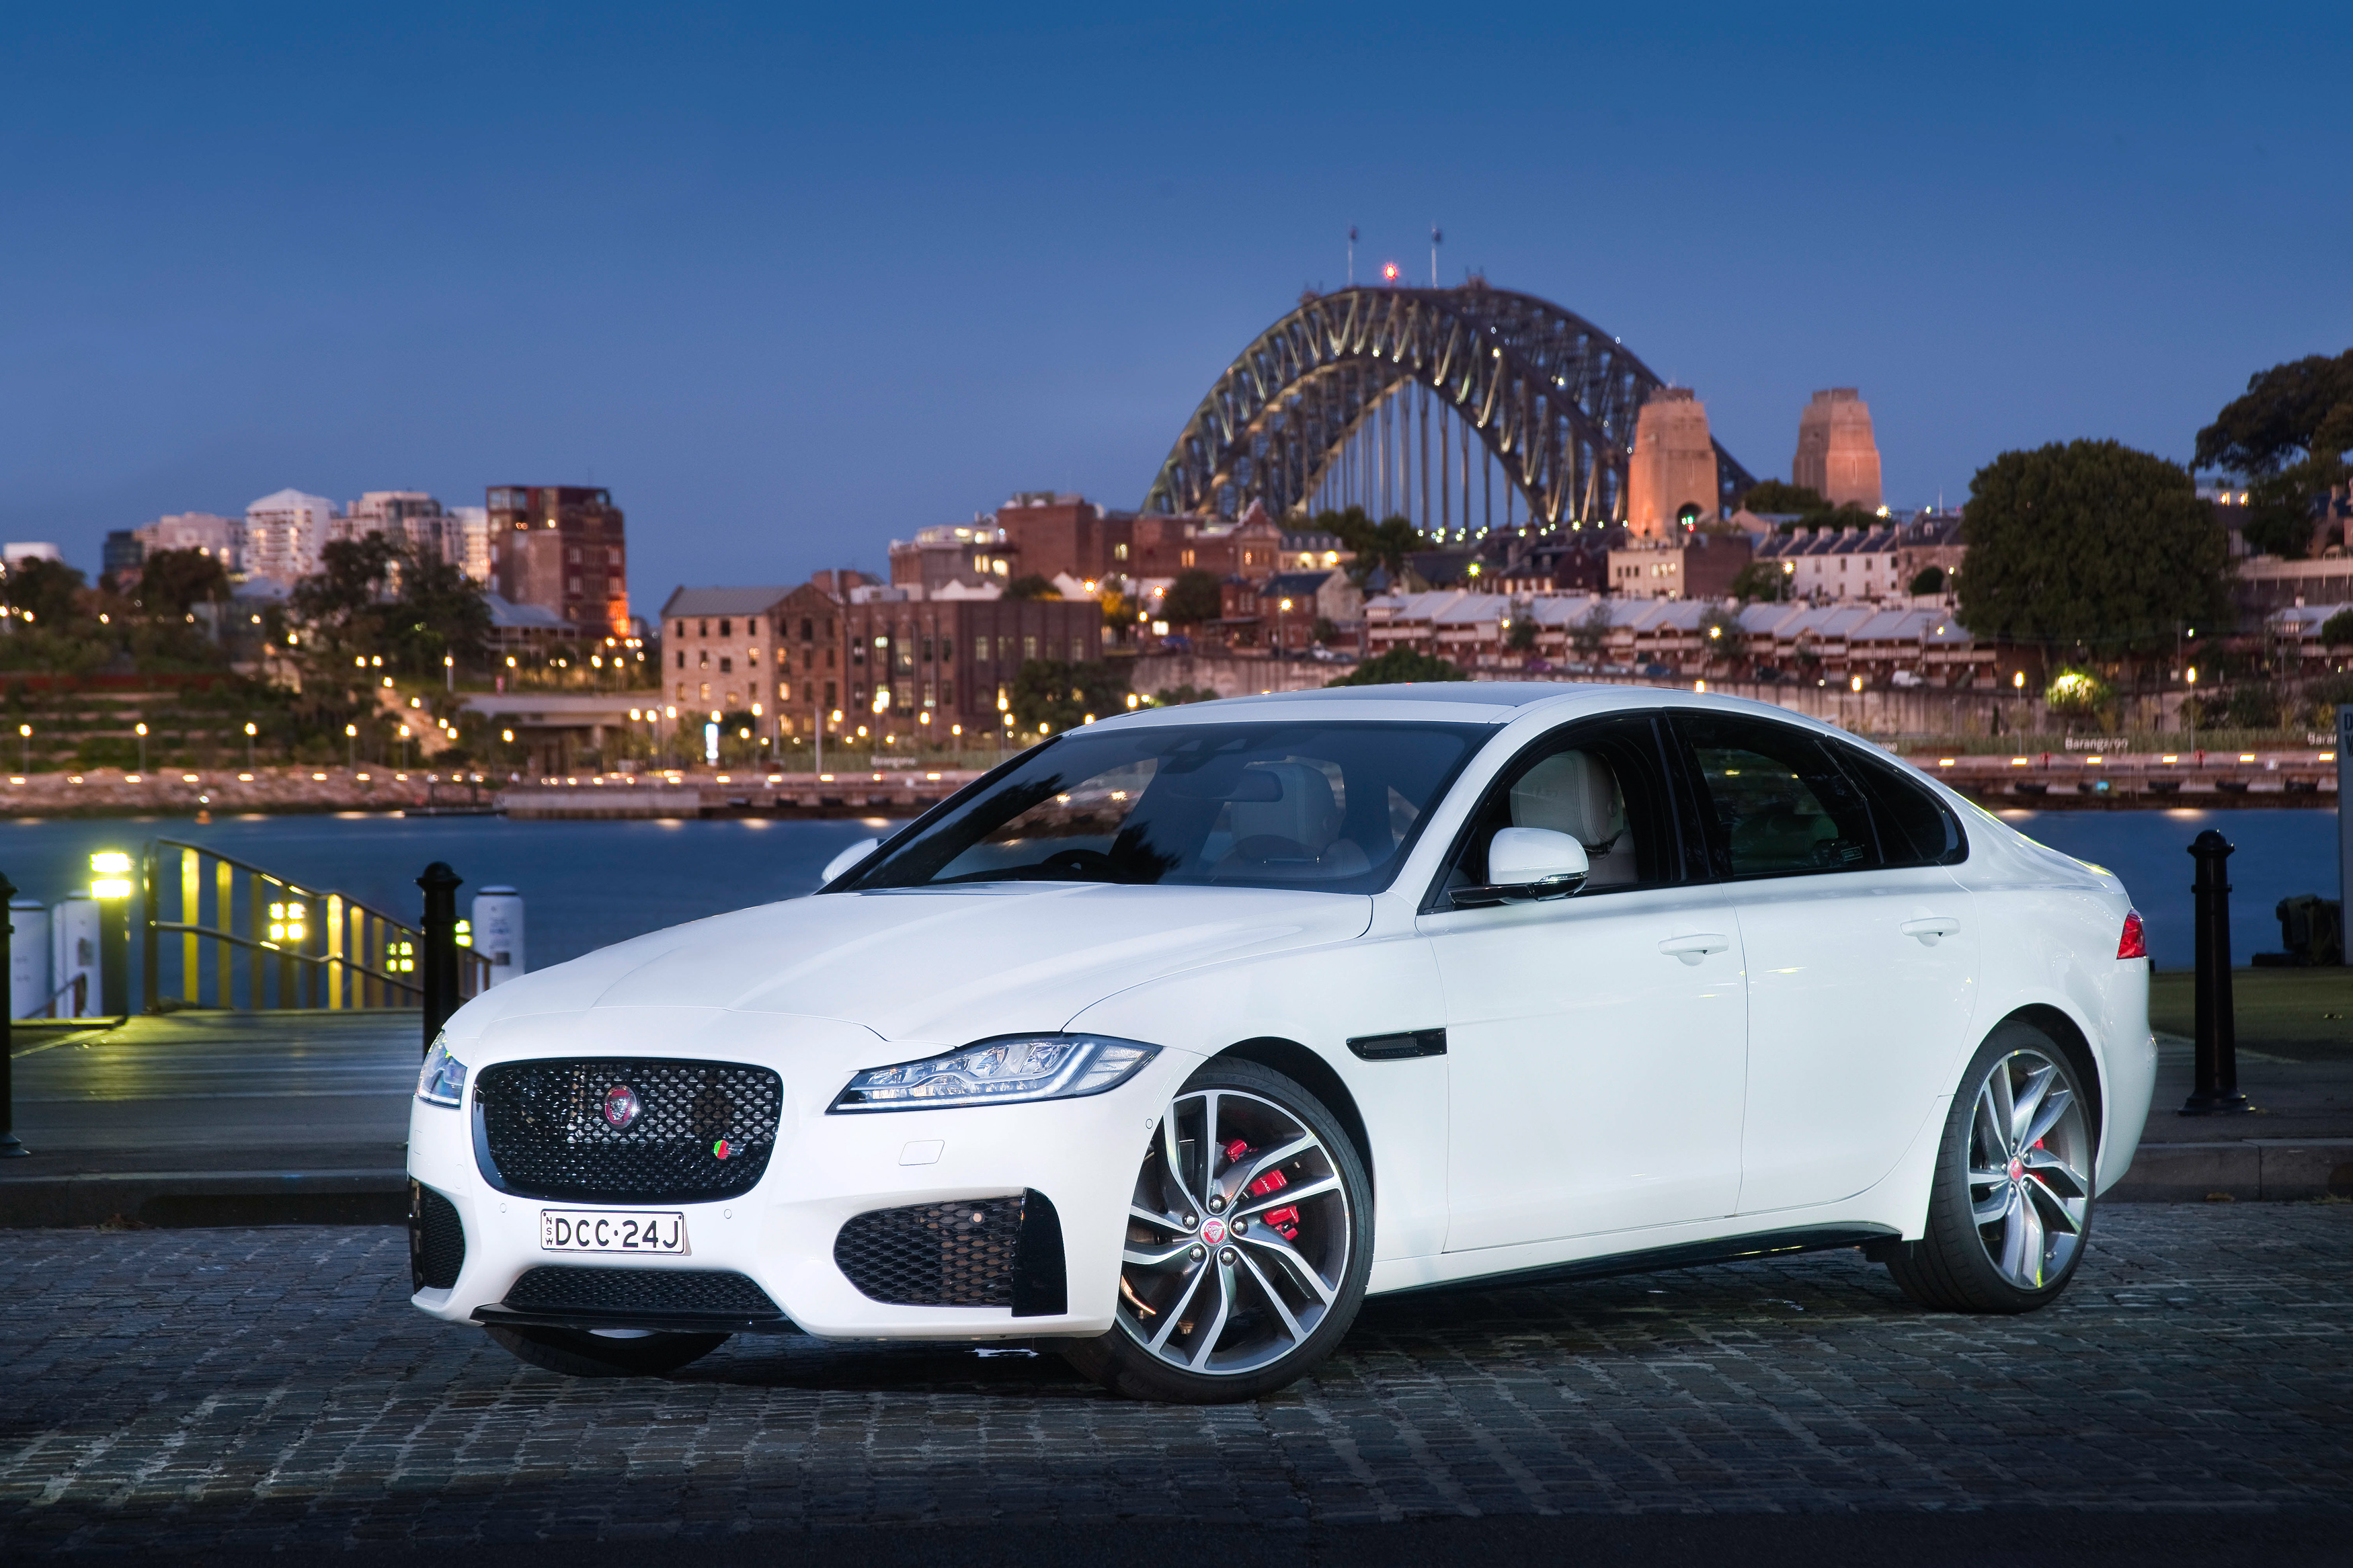 Jaguar XF Awarded 5 Star Safety Rating by ANCAP